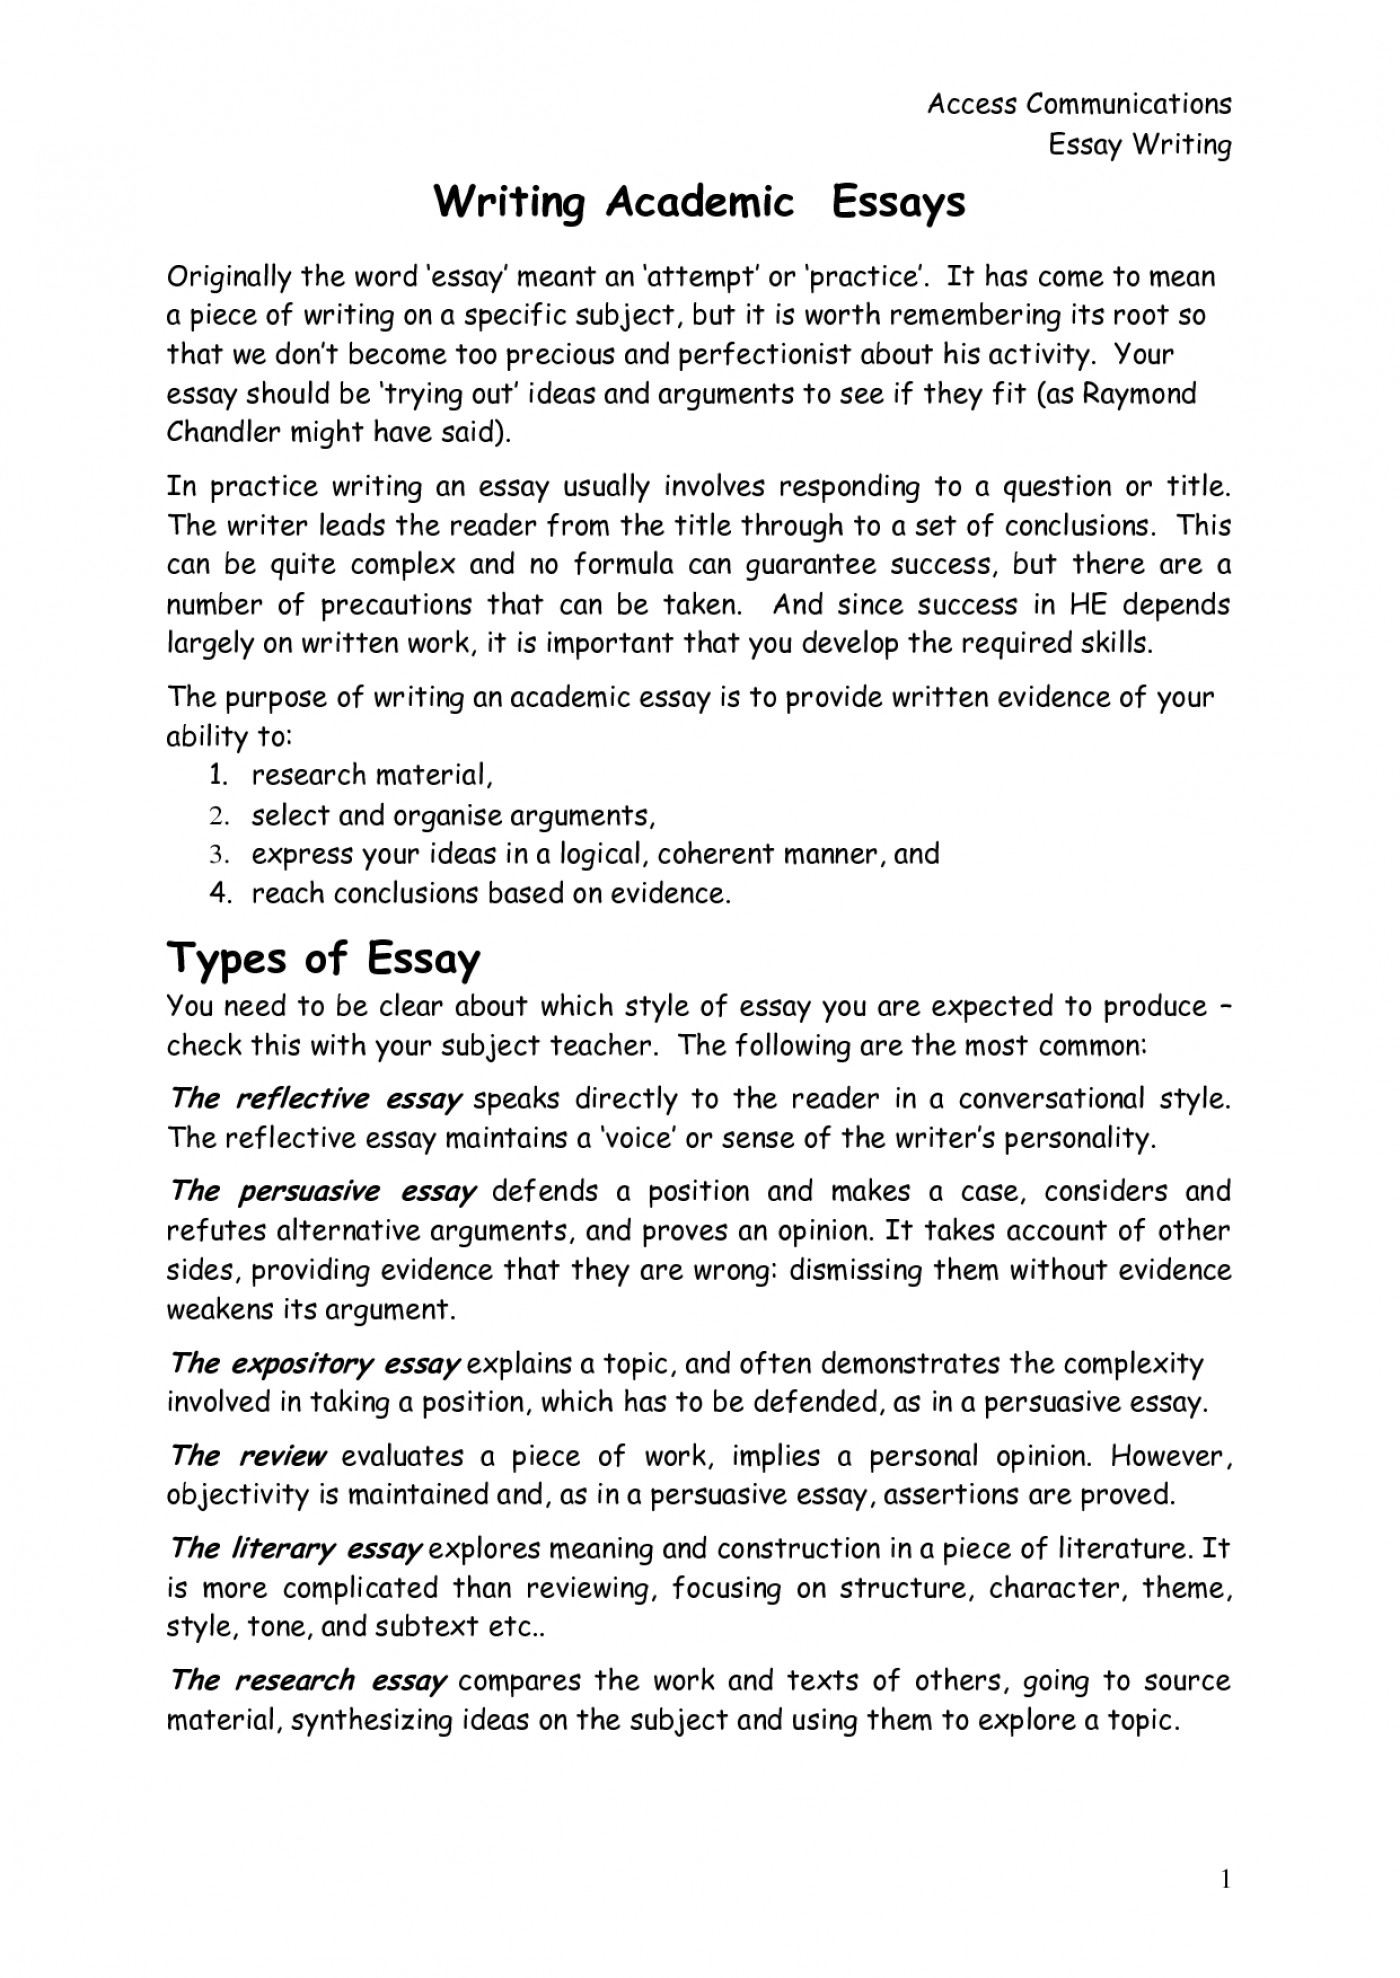 016 Reflective Essay On Academic Writings Beautiful Examples Personal Pdf About Life Format 1400